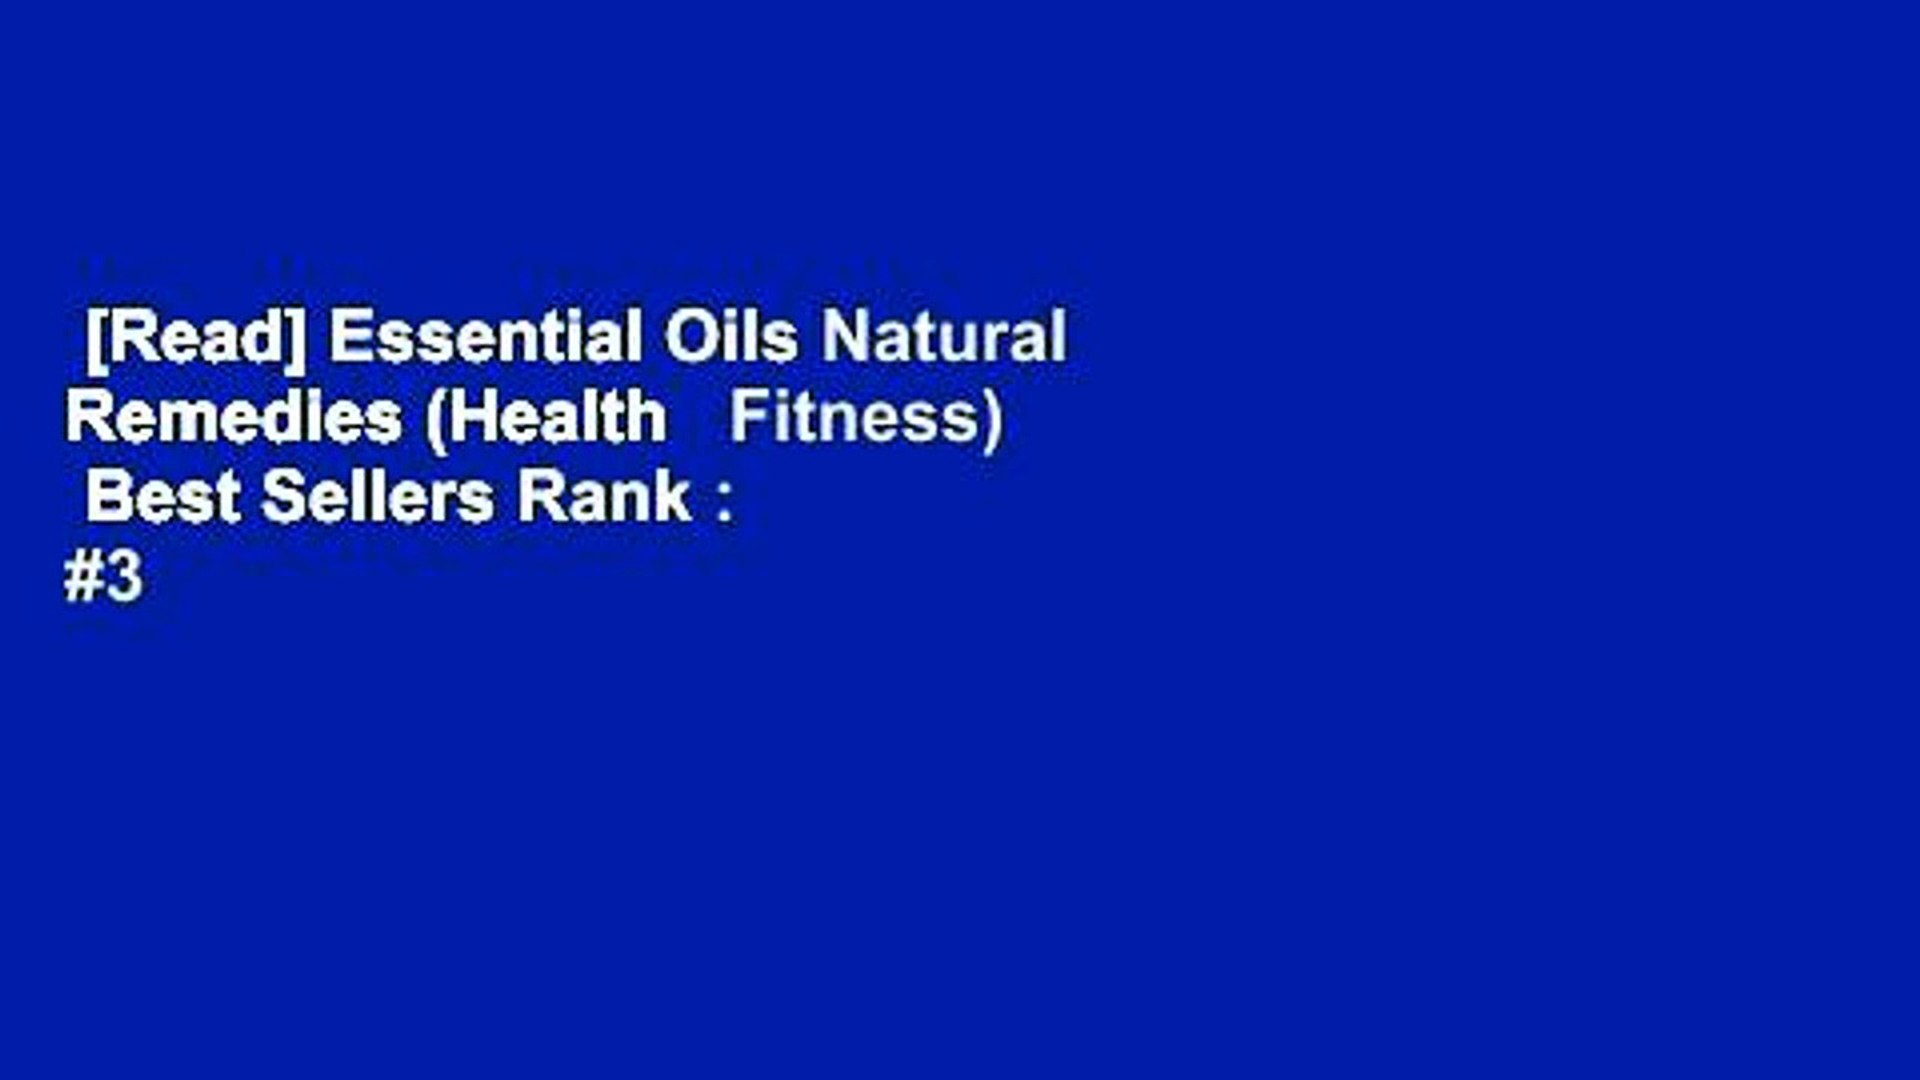 [Read] Essential Oils Natural Remedies (Health   Fitness)  Best Sellers Rank : #3